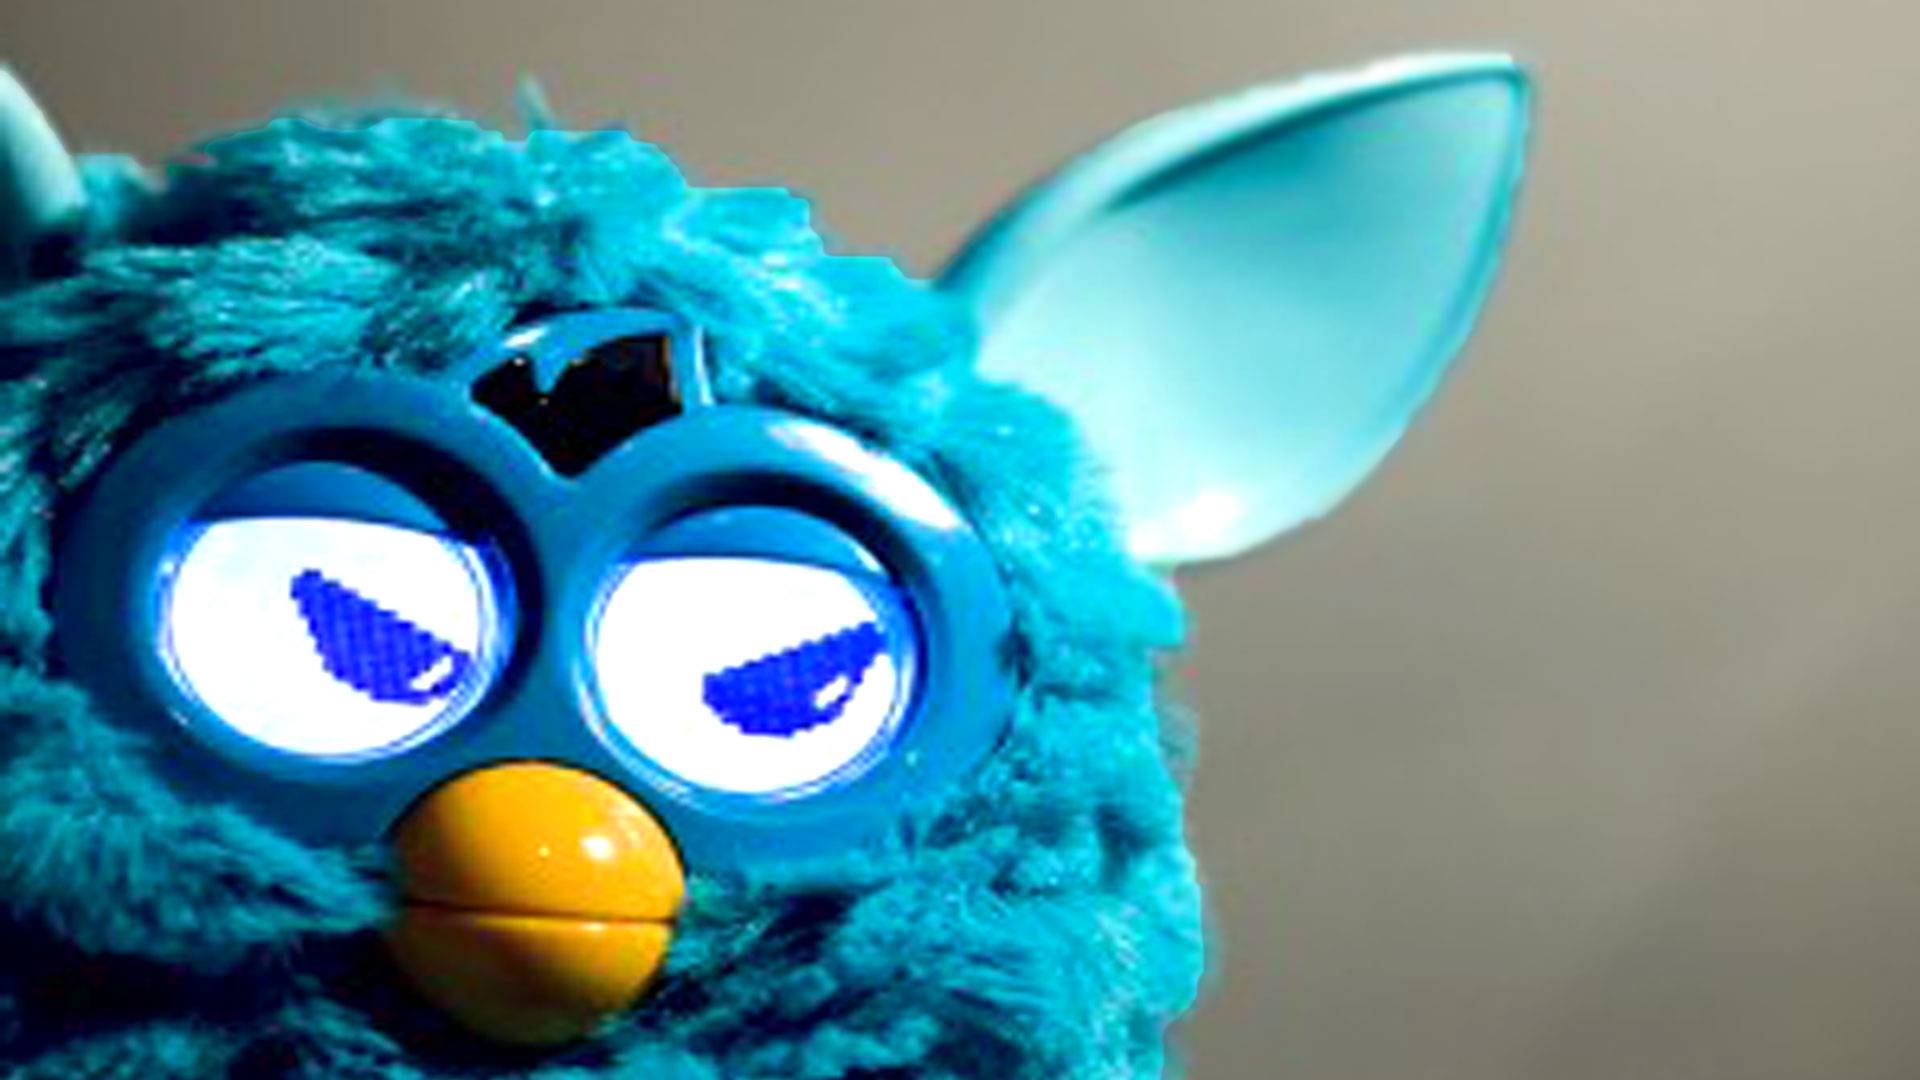 GeekOut - The Trouble with Furbies